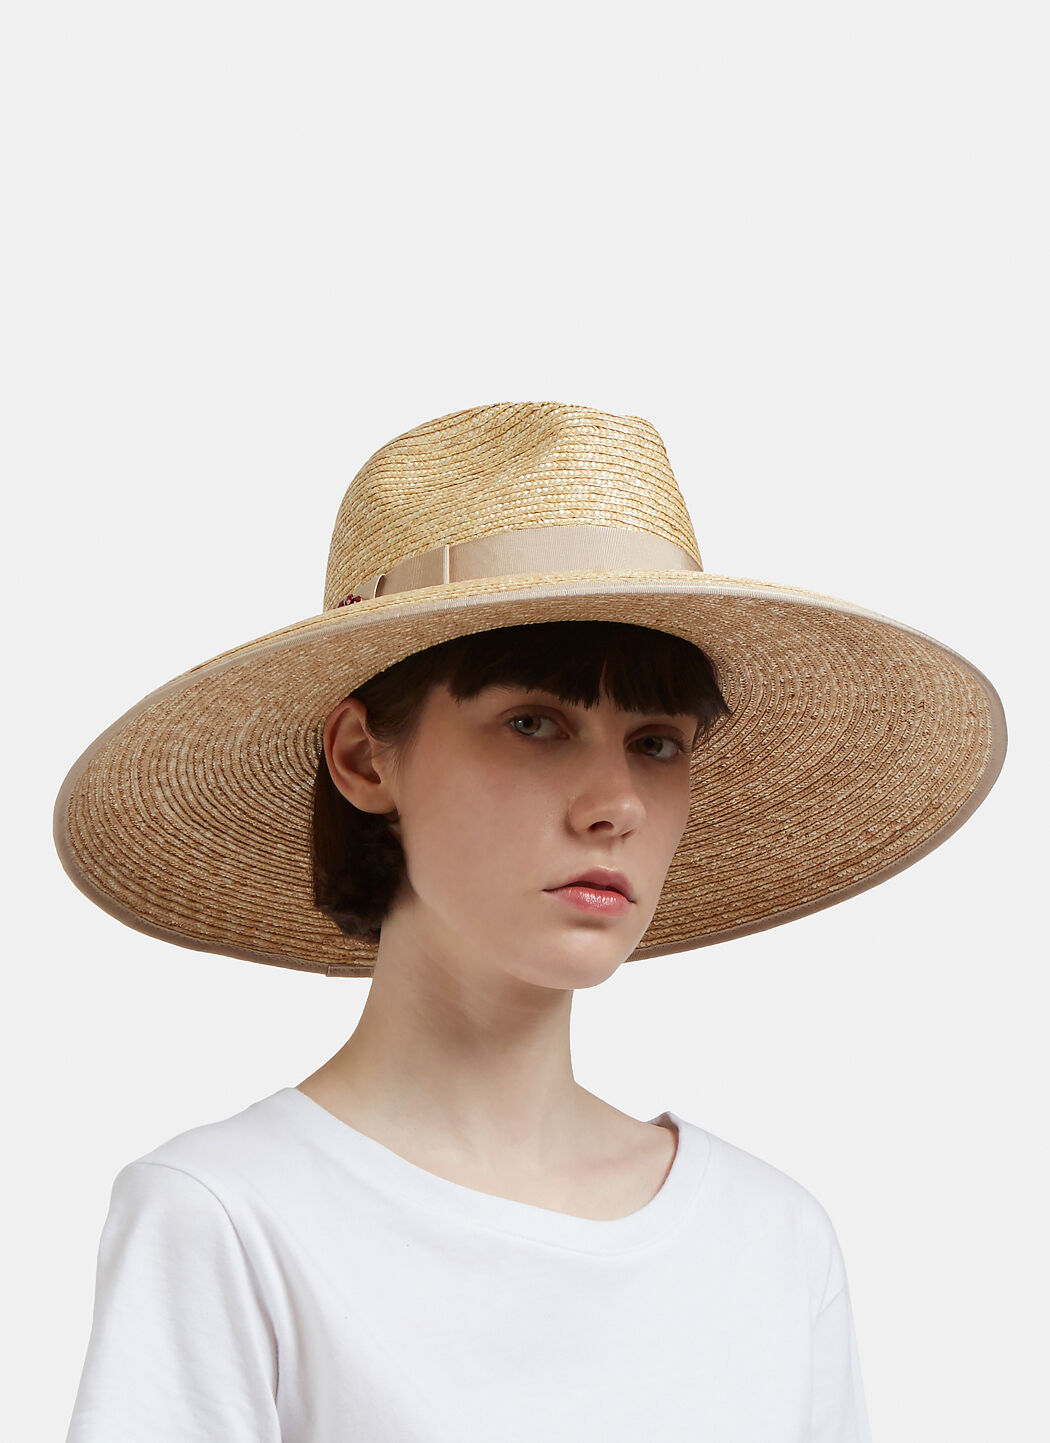 Embellished Straw Hat Gucci